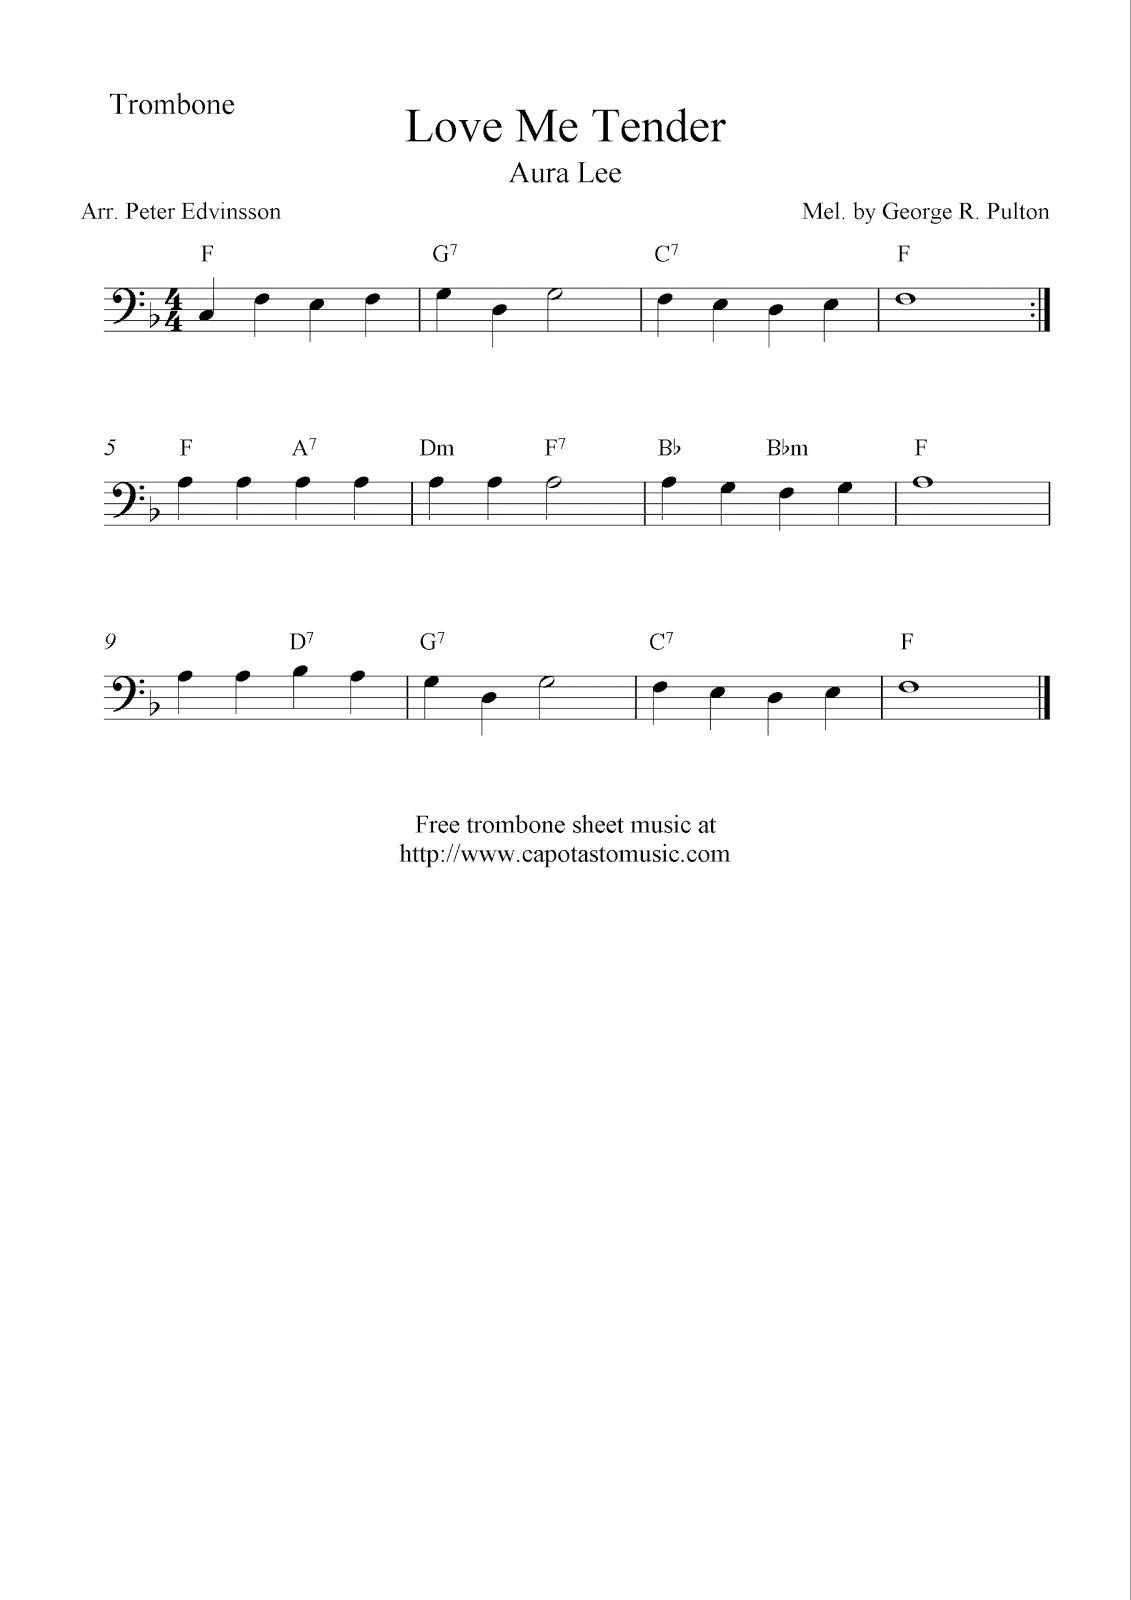 love me tender aura lee free trombone sheet music notes. Black Bedroom Furniture Sets. Home Design Ideas